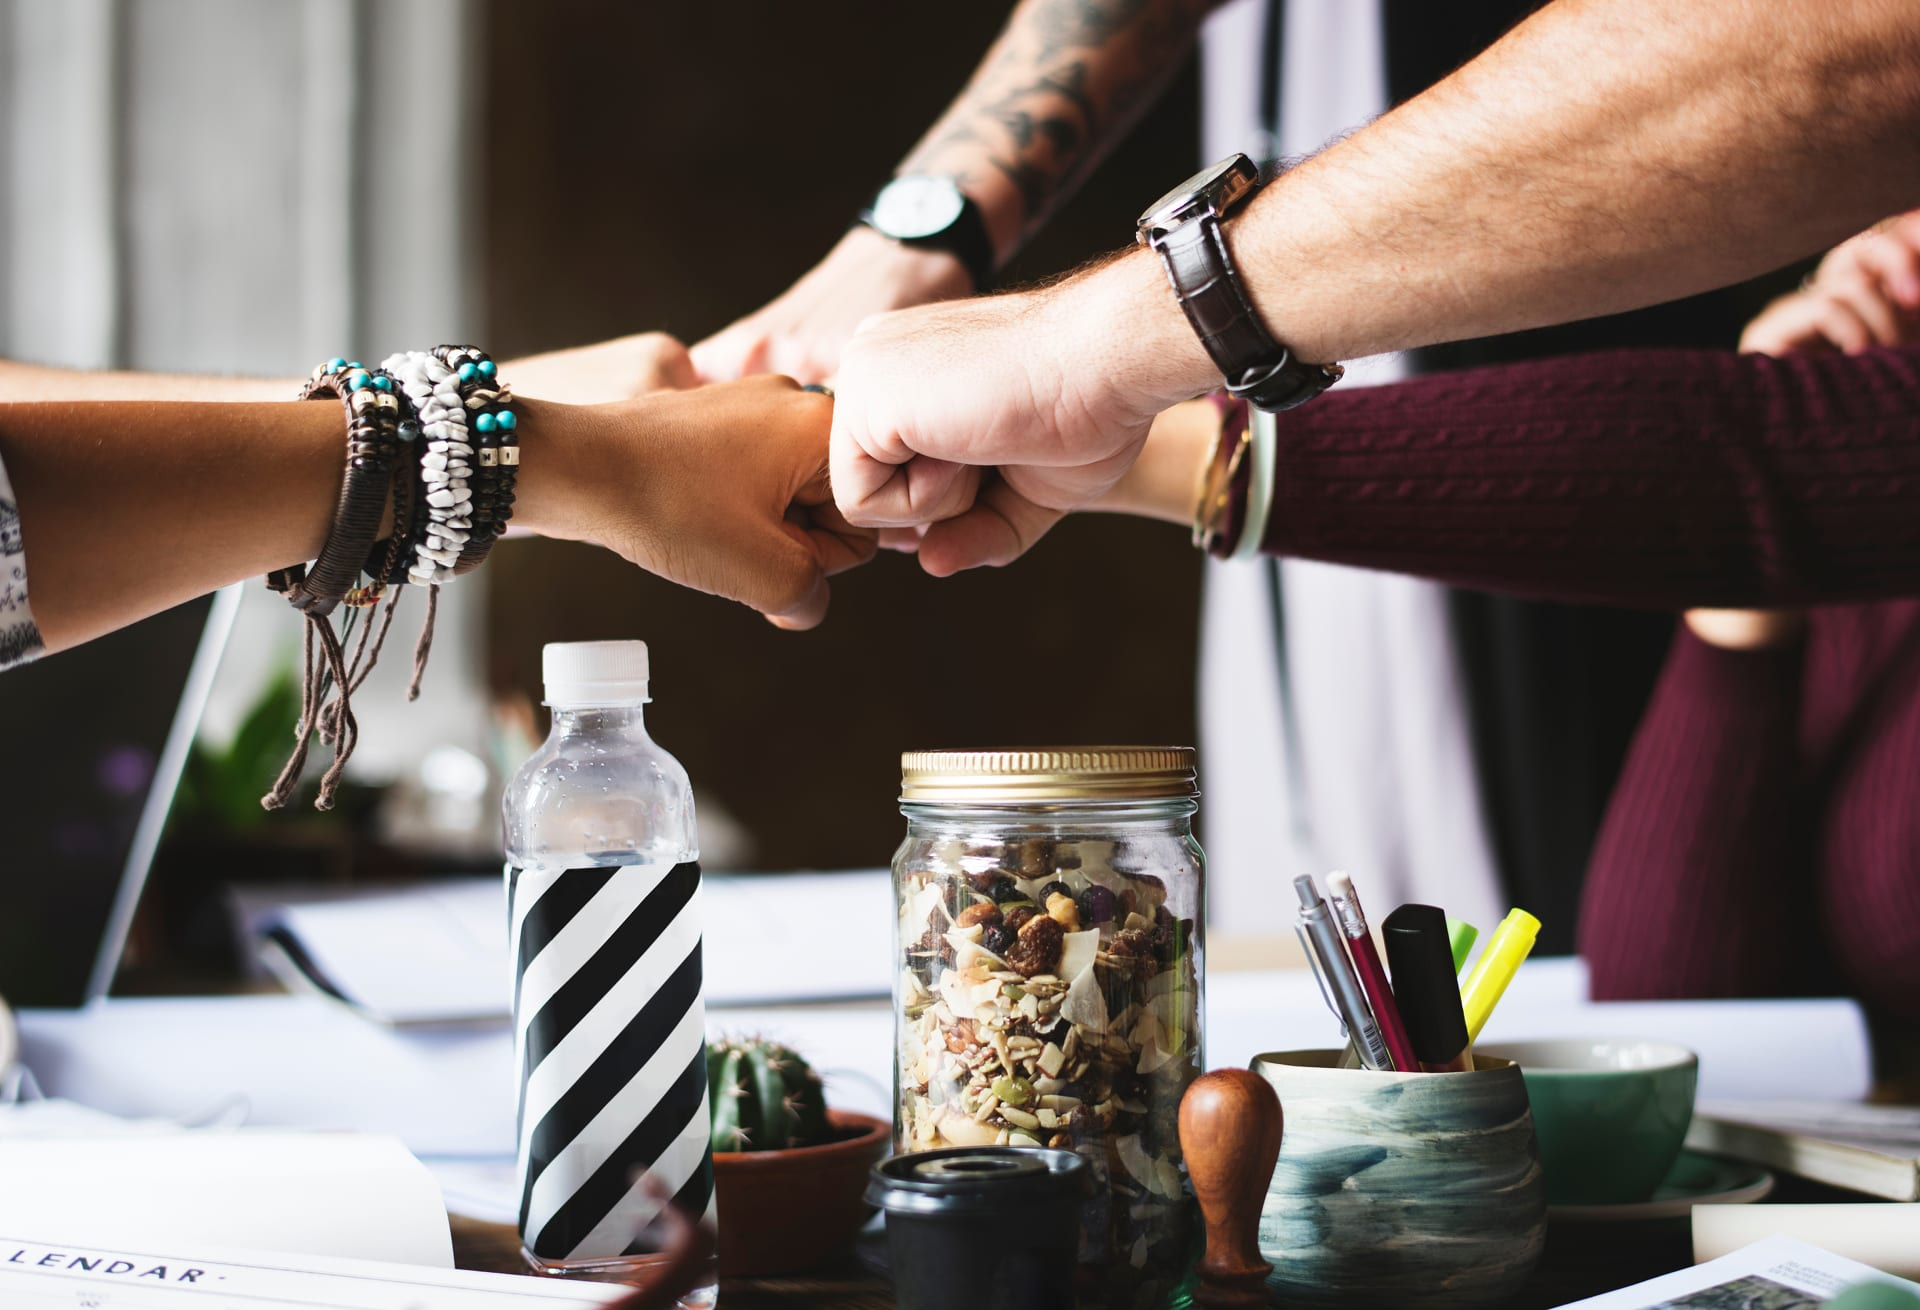 10 tips for boosting your people skills